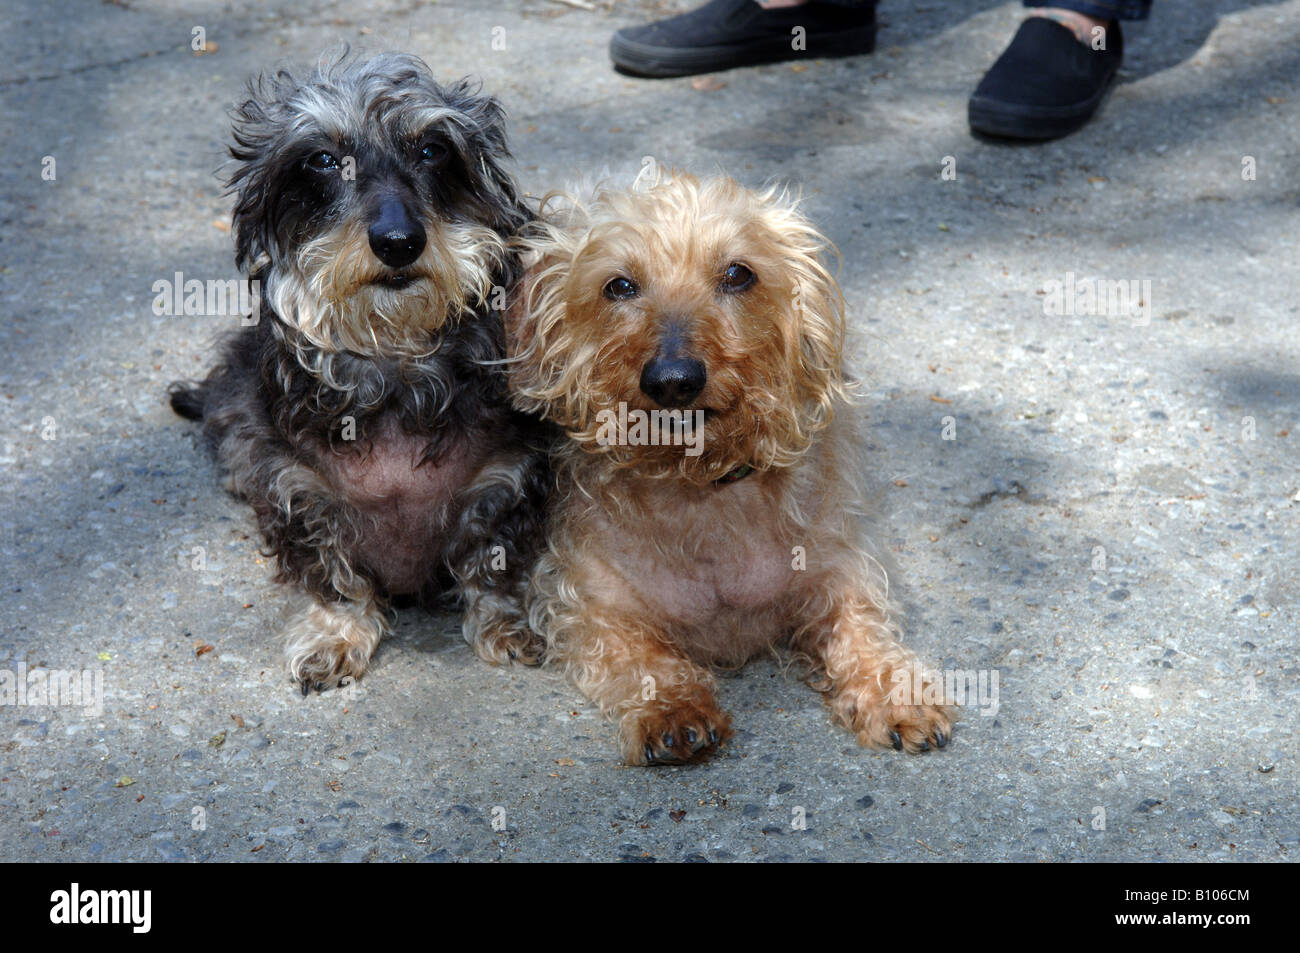 Wirehaired Dachshunds - Stock Image